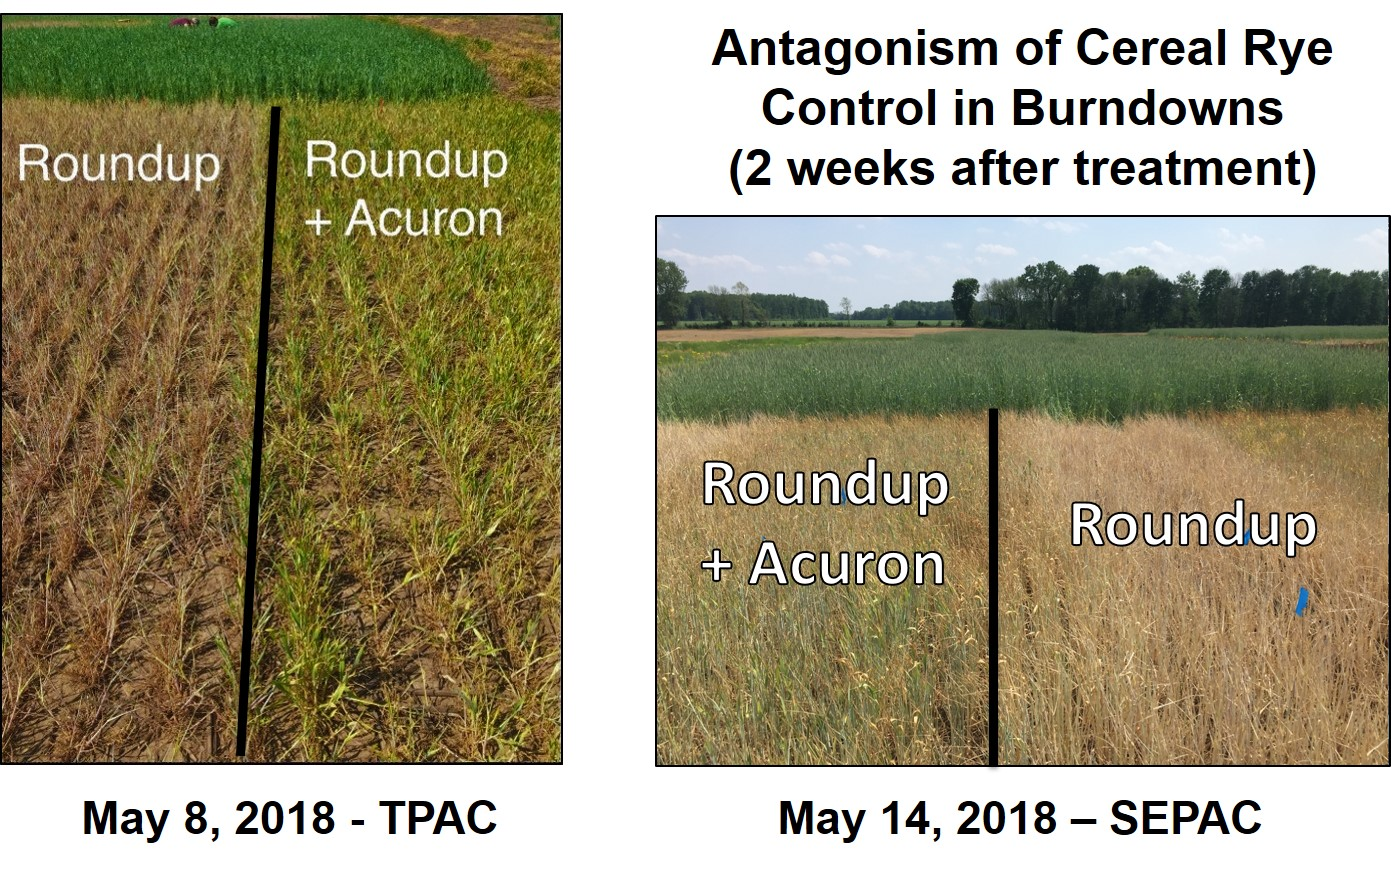 Figure 1. Picture of Roundup alone compared to Roundup + Acuron two weeks after herbicide application to terminate cereal rye.